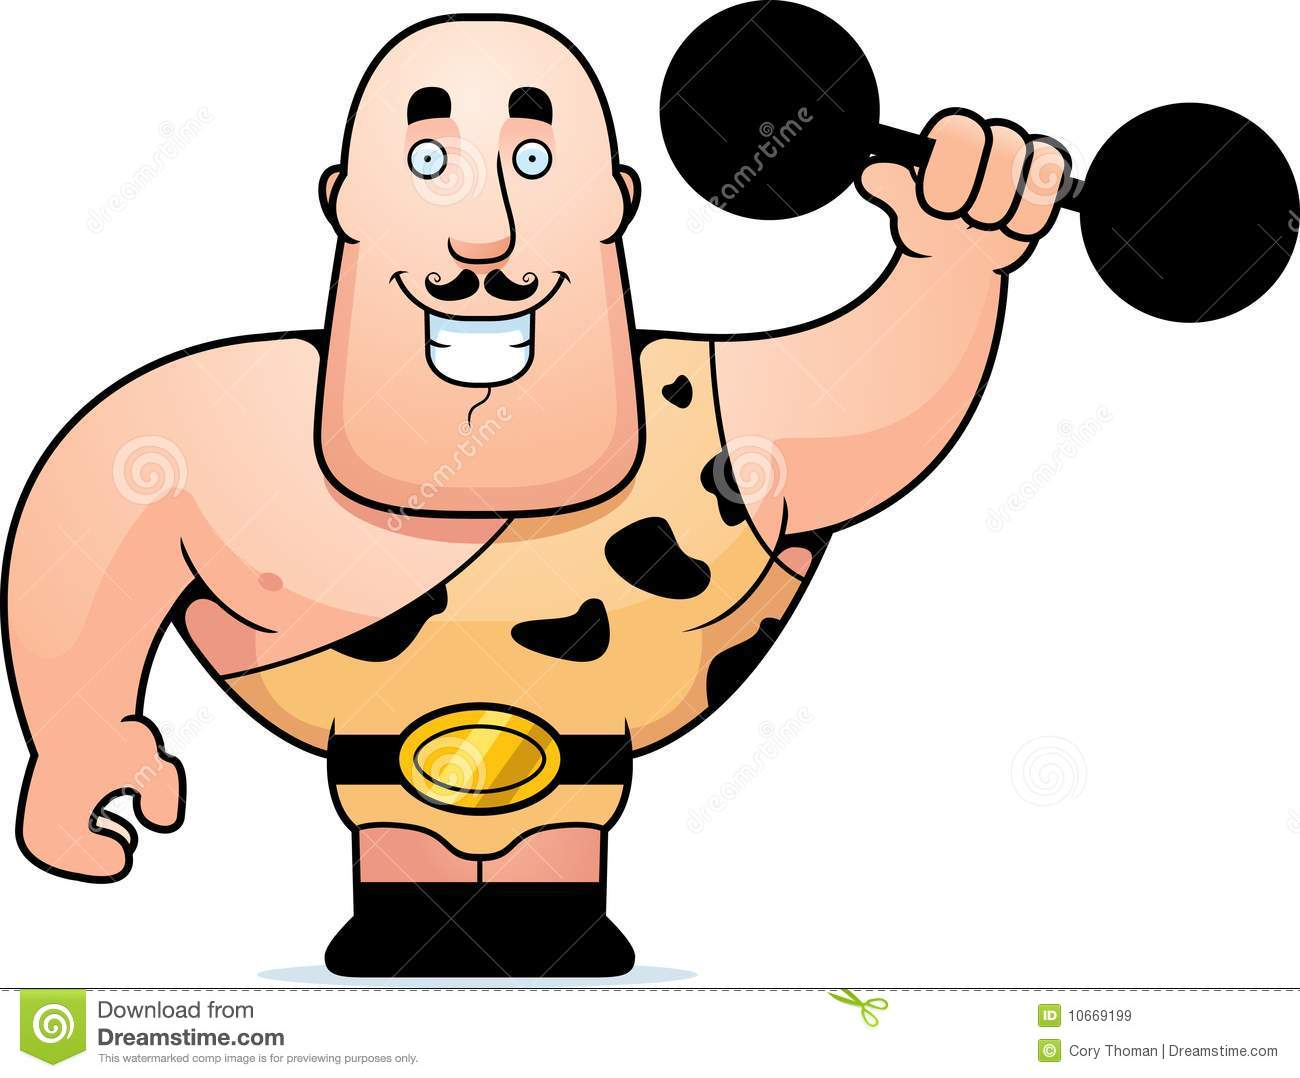 how to draw a strong man cartoon